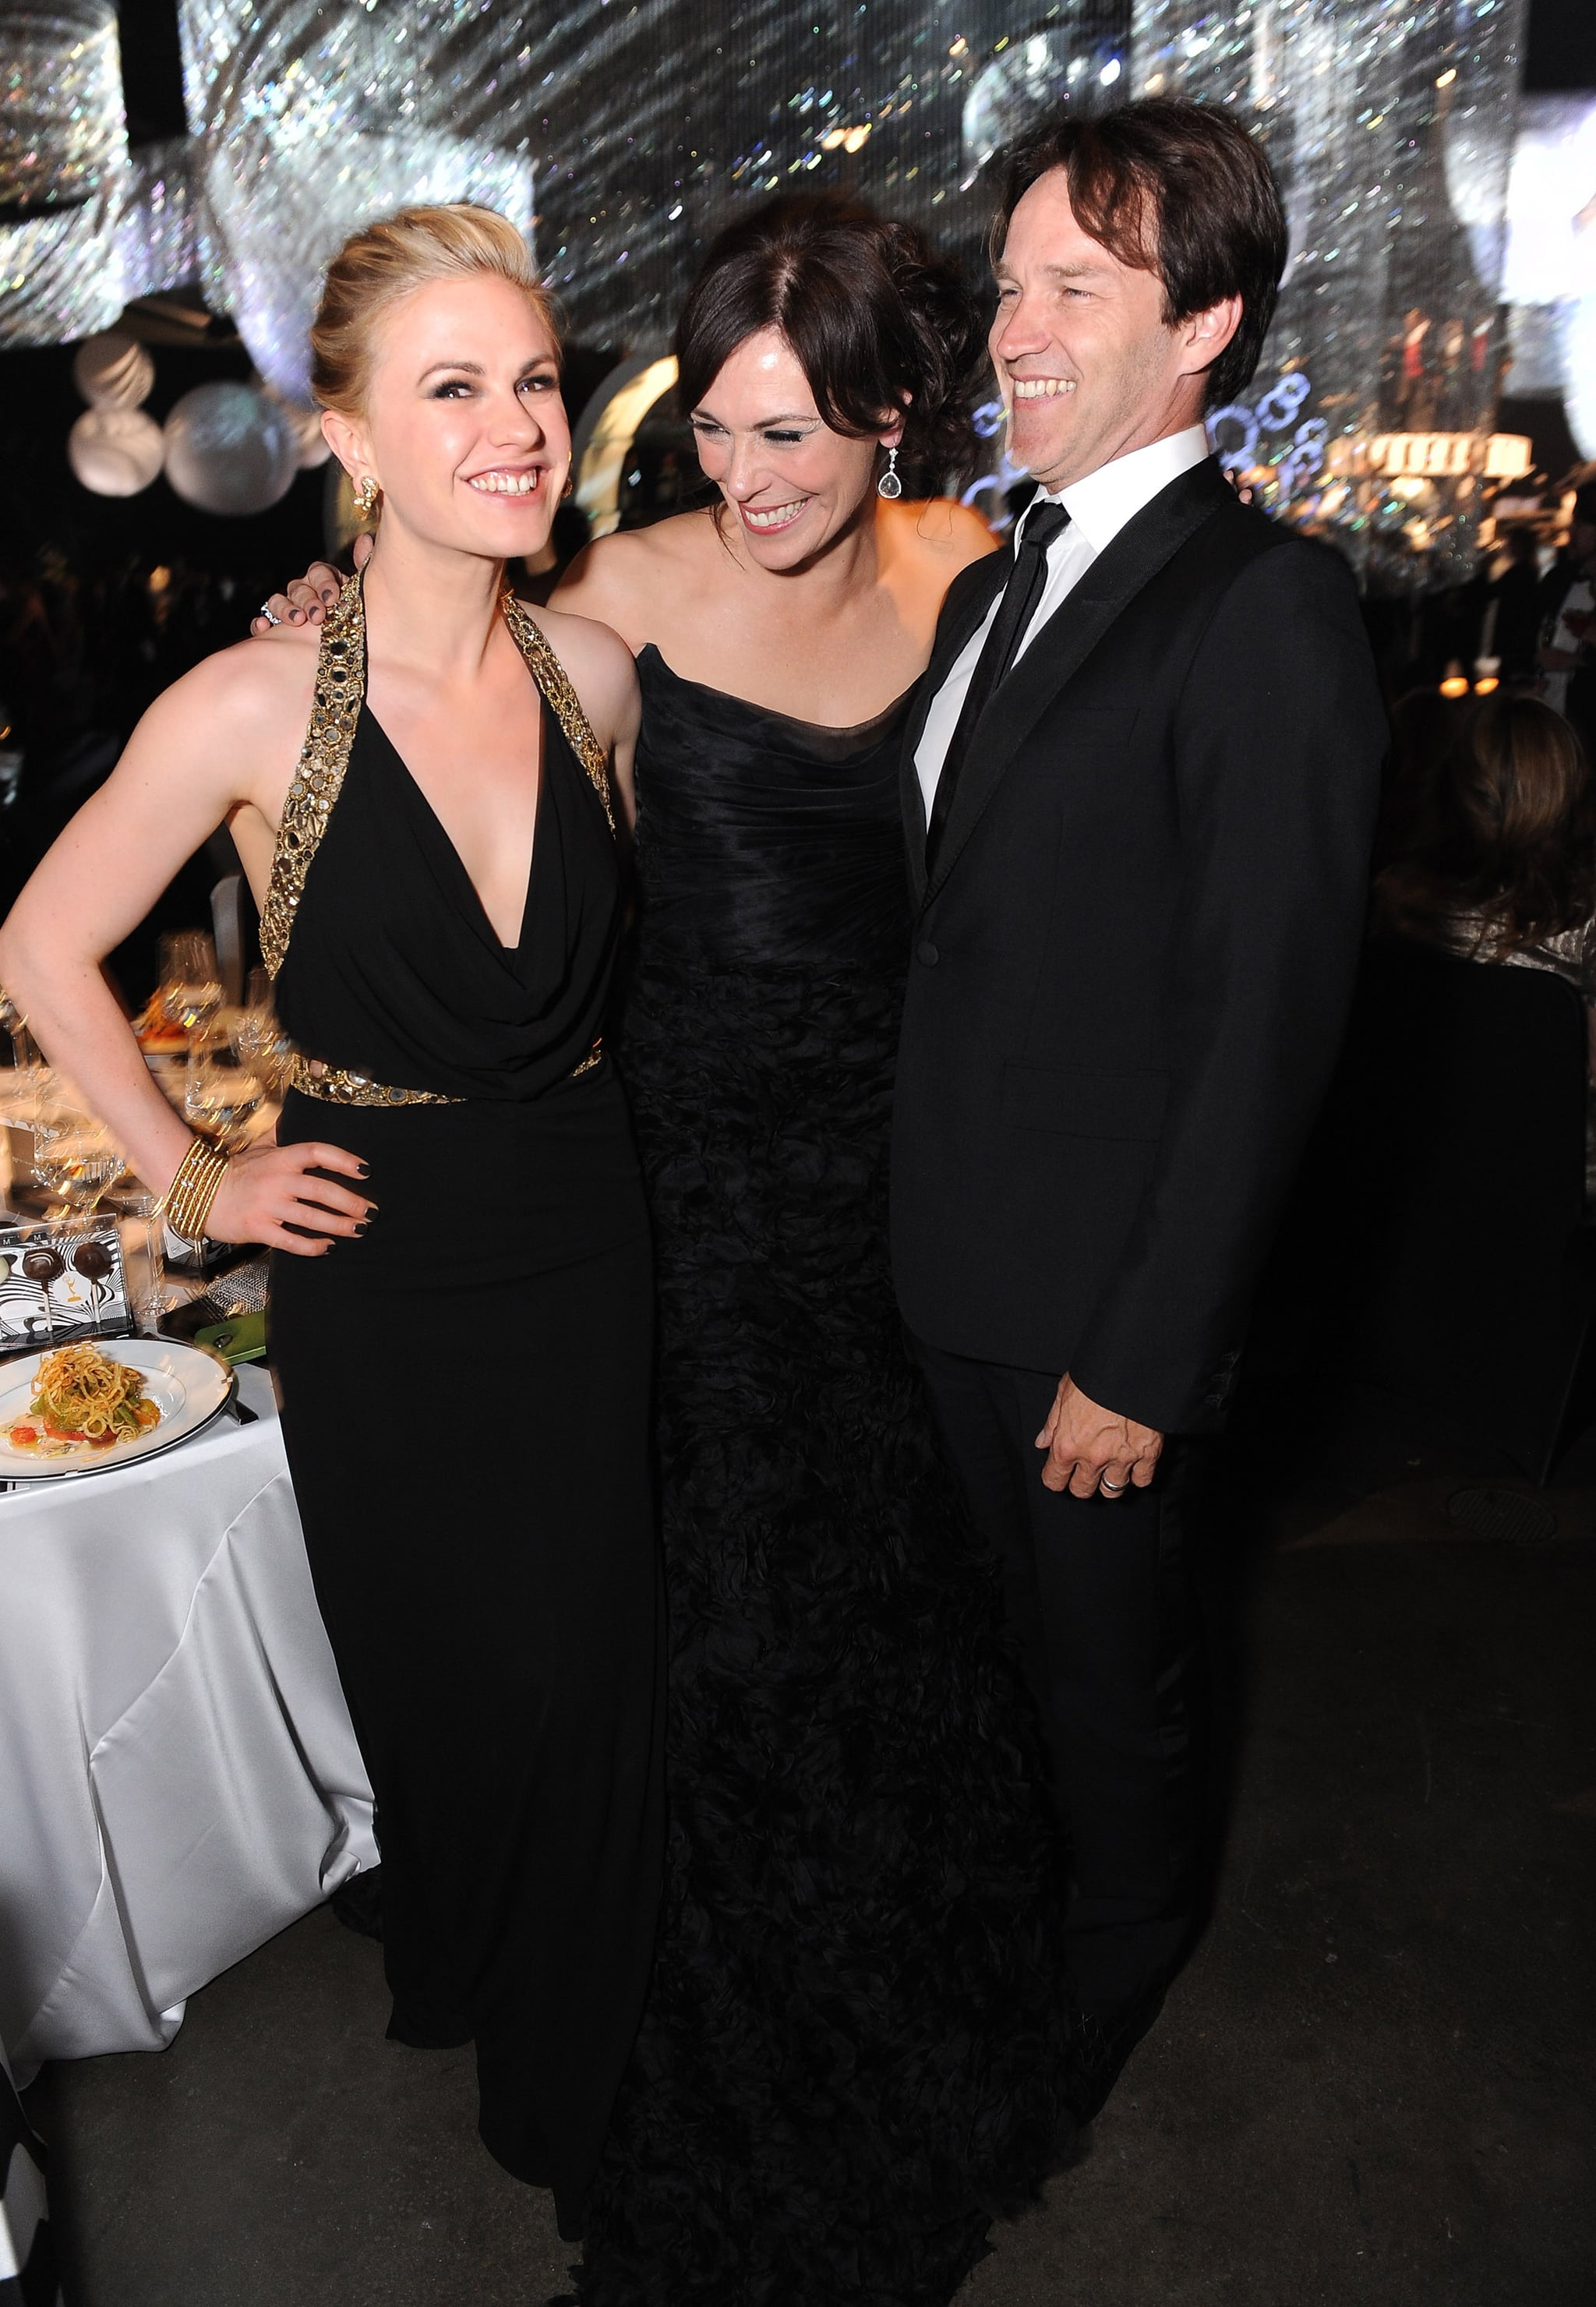 Anna Paquin, Stephen Moyer, and Michelle Forbes at the Emmy's Governor's Ball.